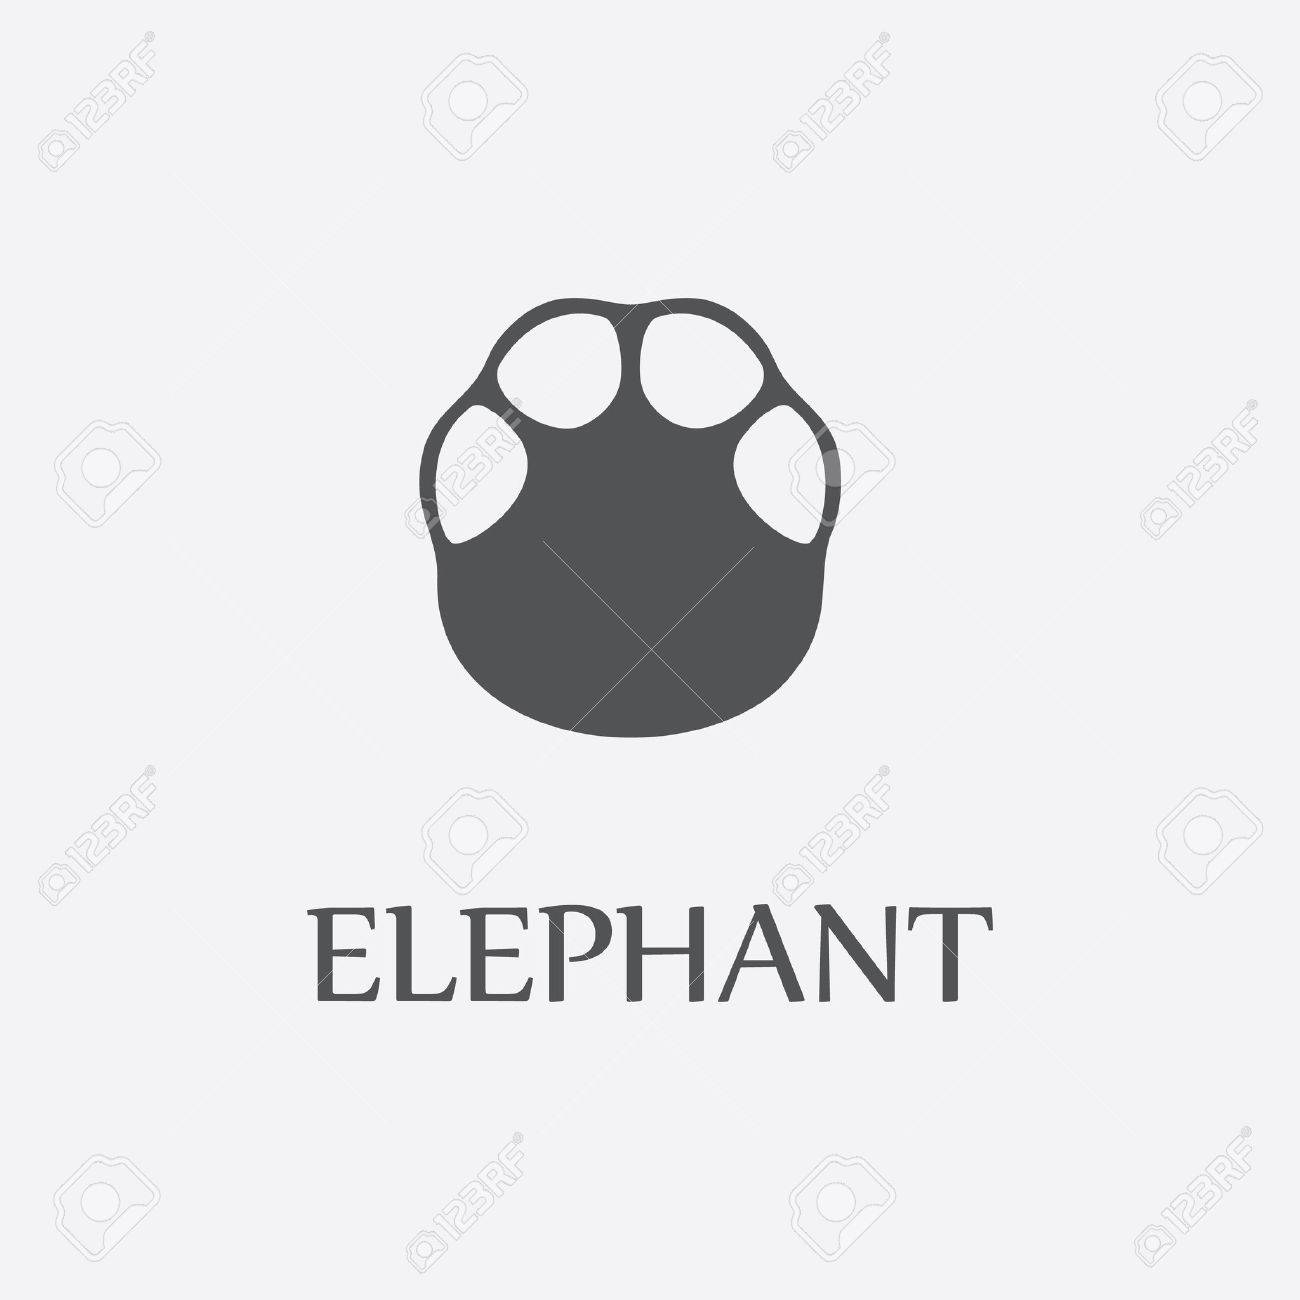 Elephant print black simple icon for web and other design. - 55134874